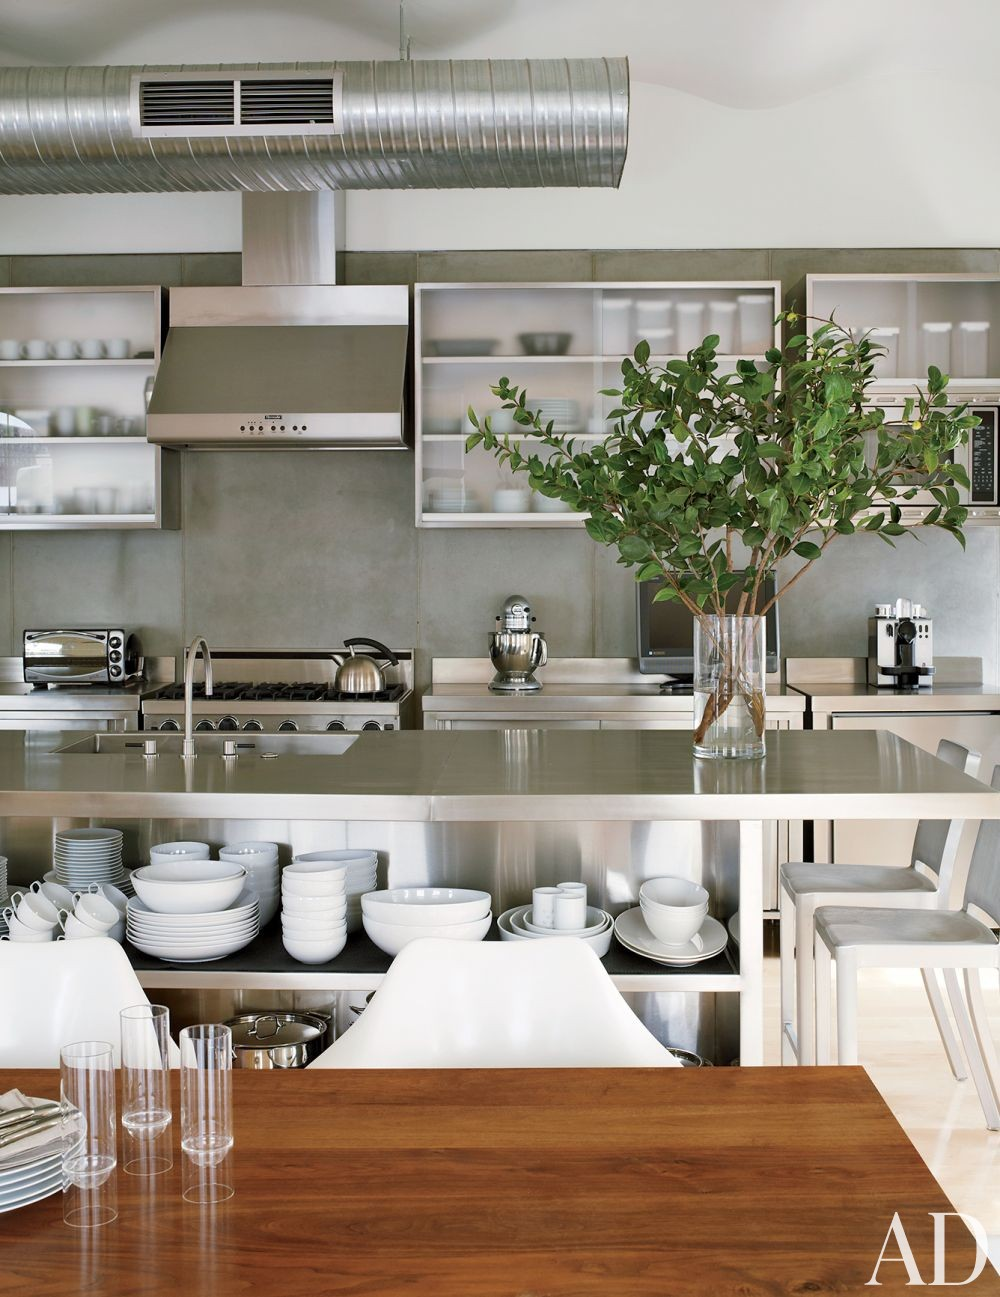 Modern kitchen by mr architecture d cor by architectural digest ad designfile home - Cuisine moderne images architectural digest ...